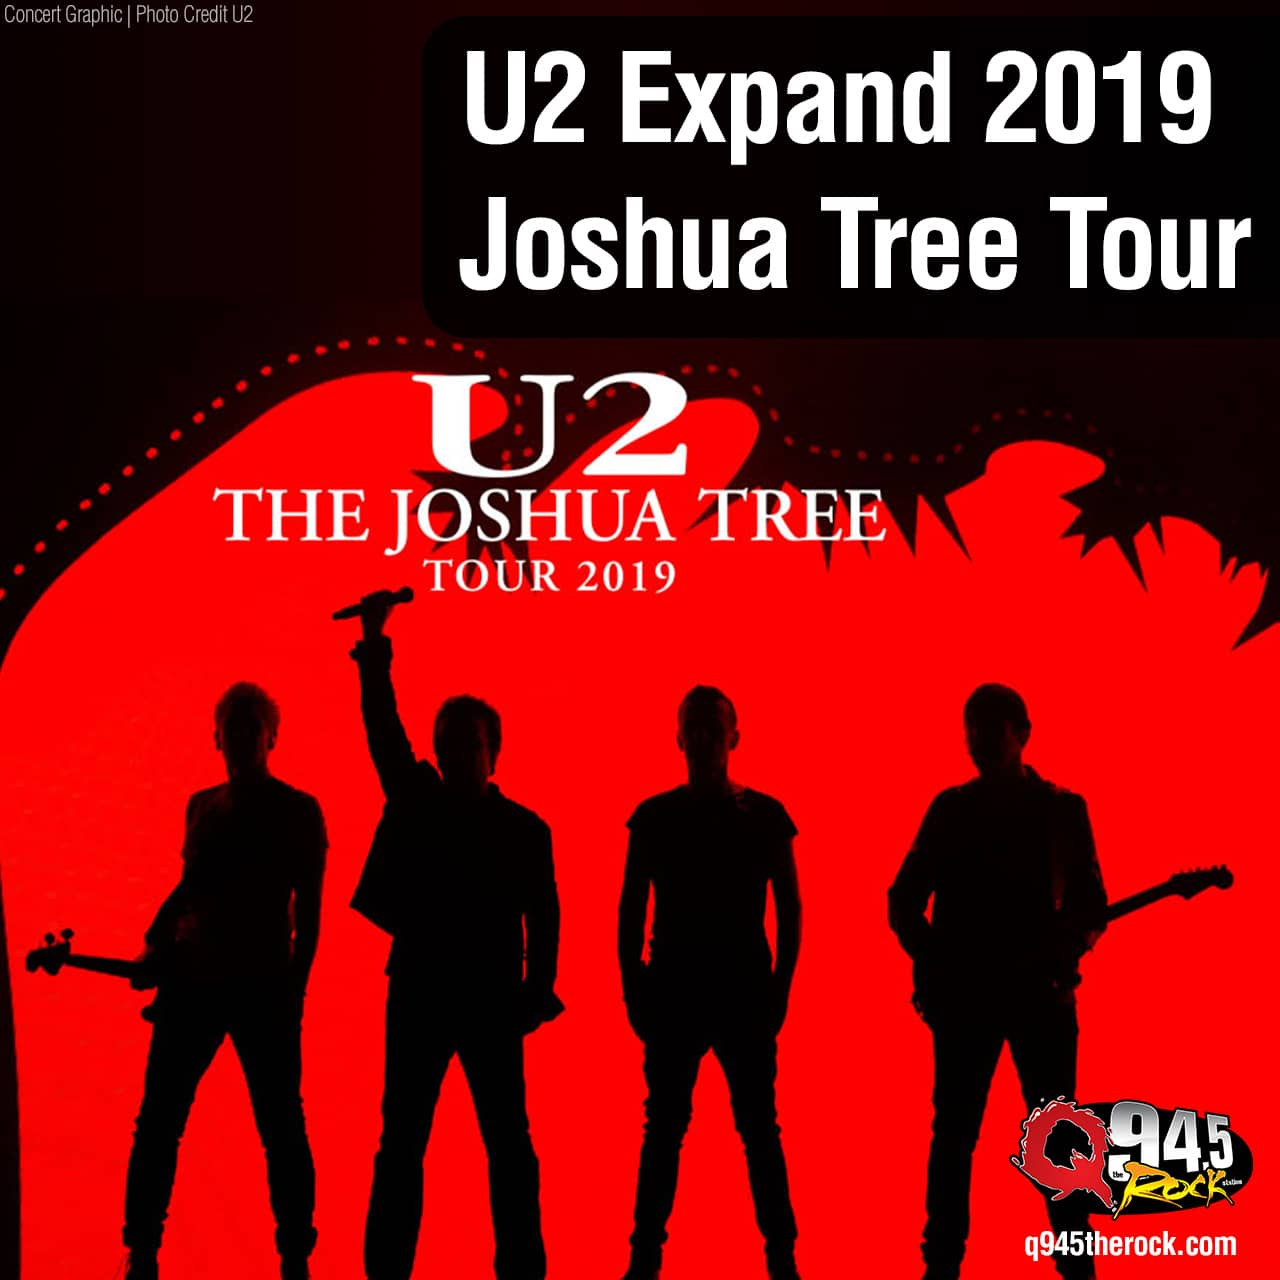 U2 Expand 2019 Joshua Tree Tour